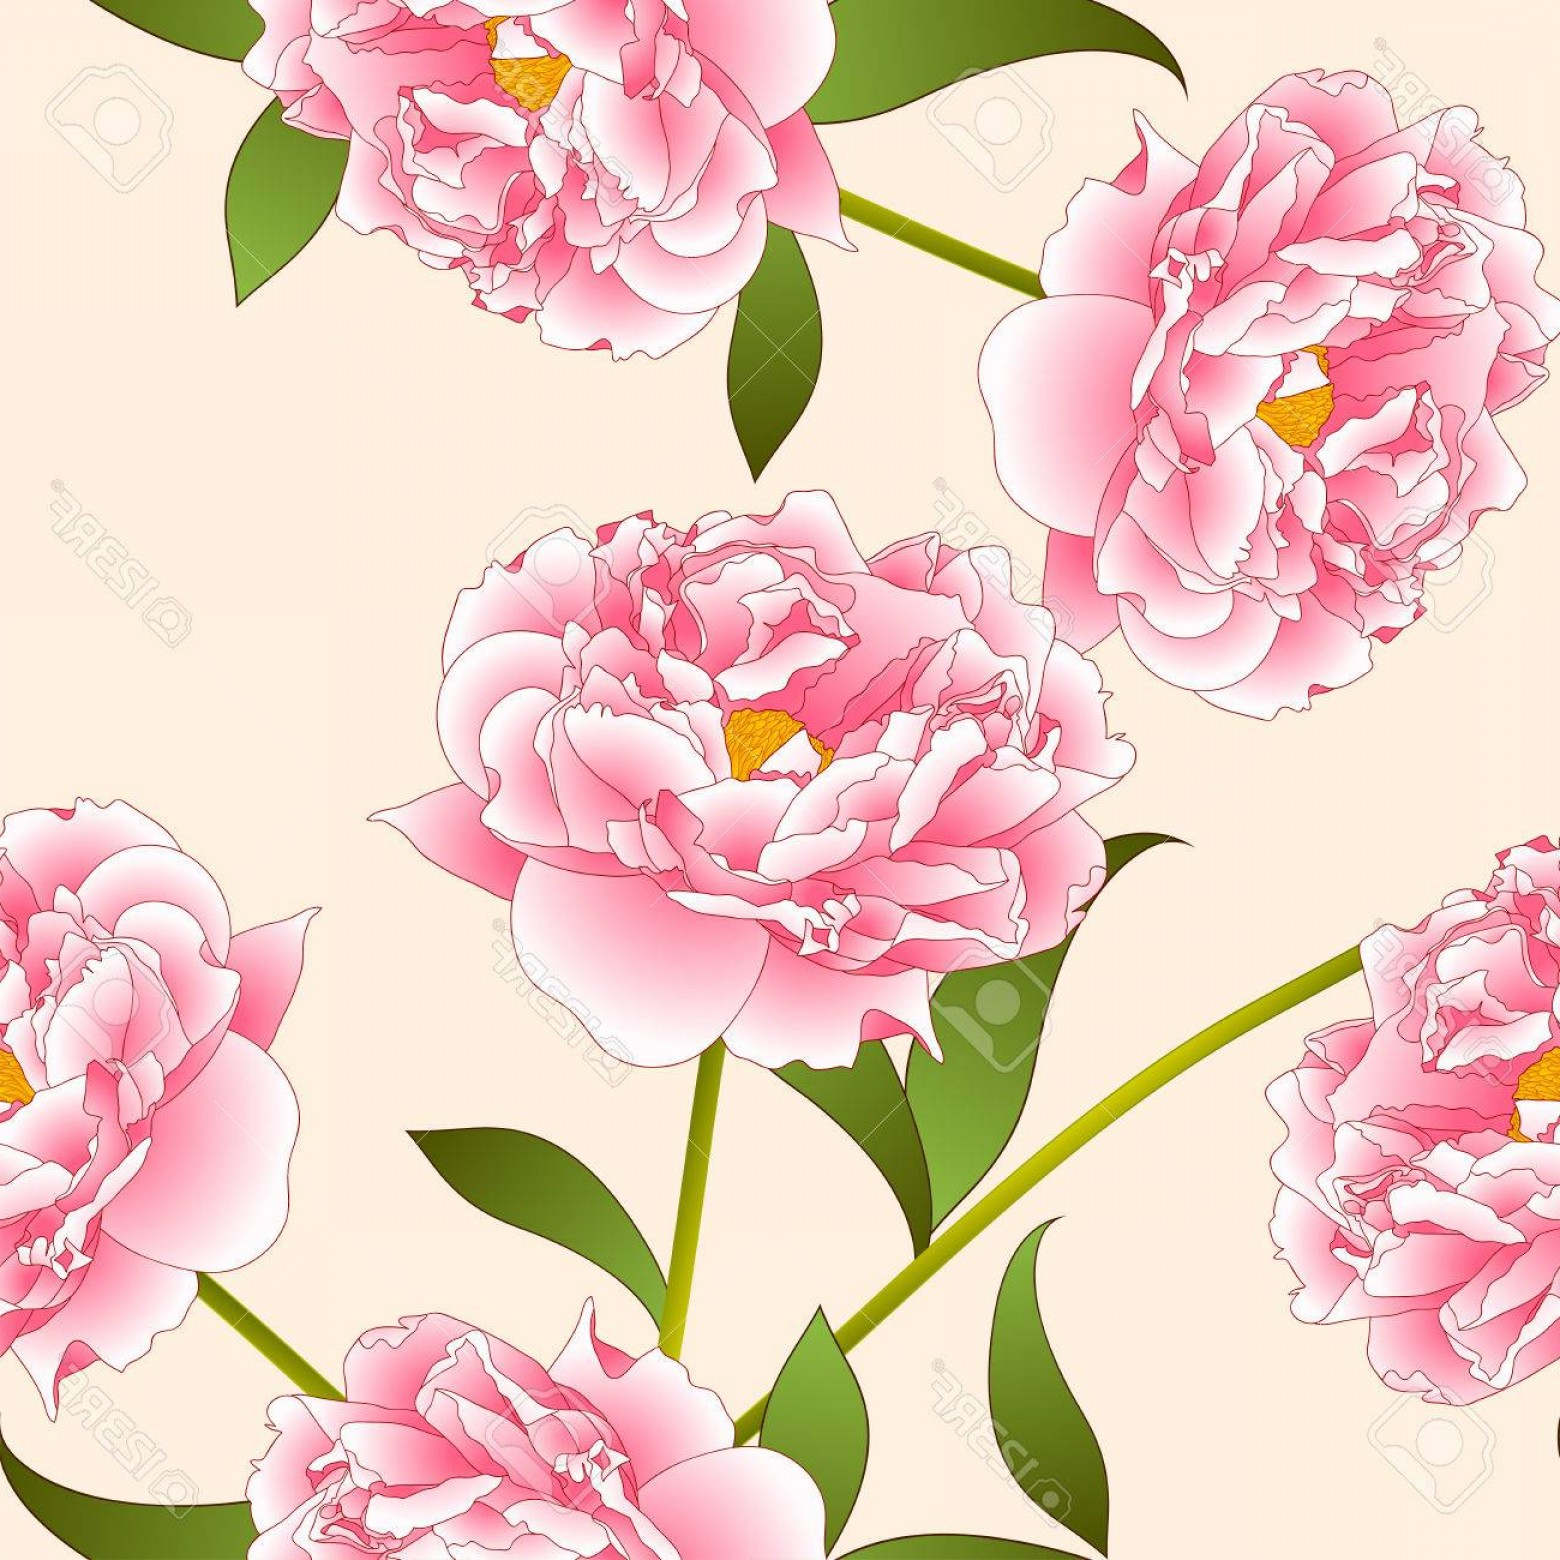 Pink Peony Vector: Photostock Vector Pink Peony Flower On Beige Ivory Background Vector Illustration